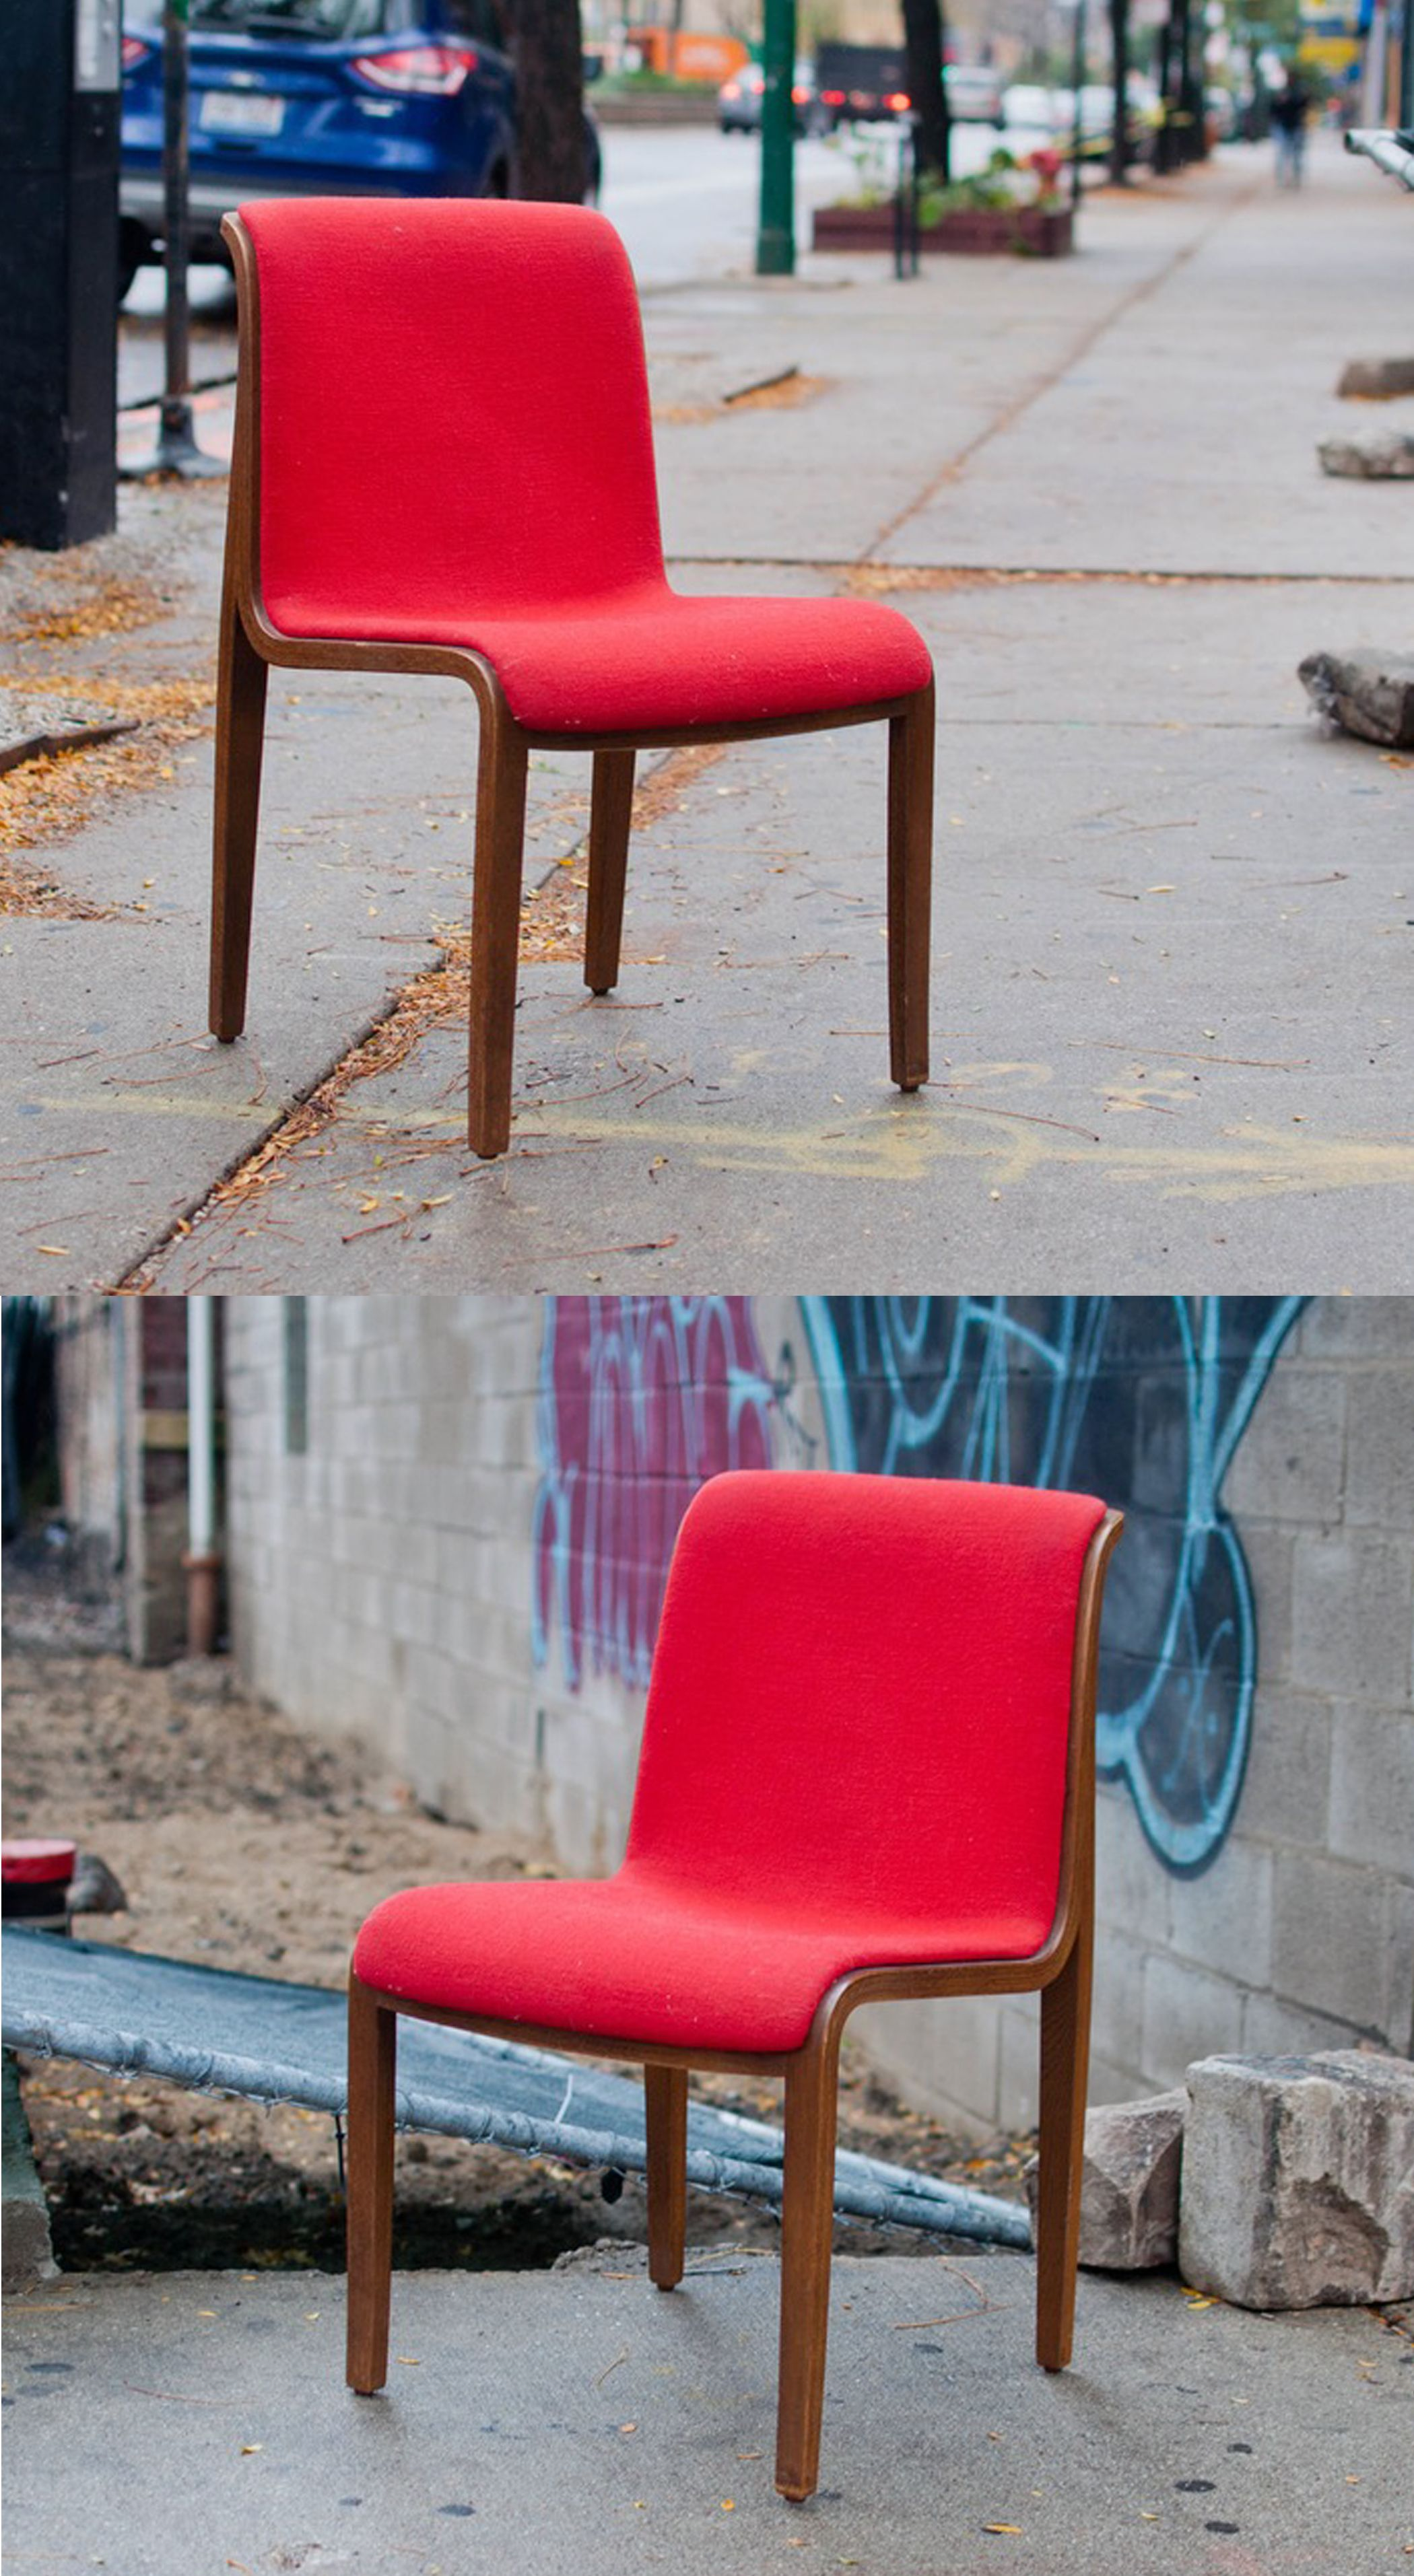 Knoll life chair geek - Add A Pop Of Color In Your Favorte Corner With This Sleek Bentwood Chair By Knoll